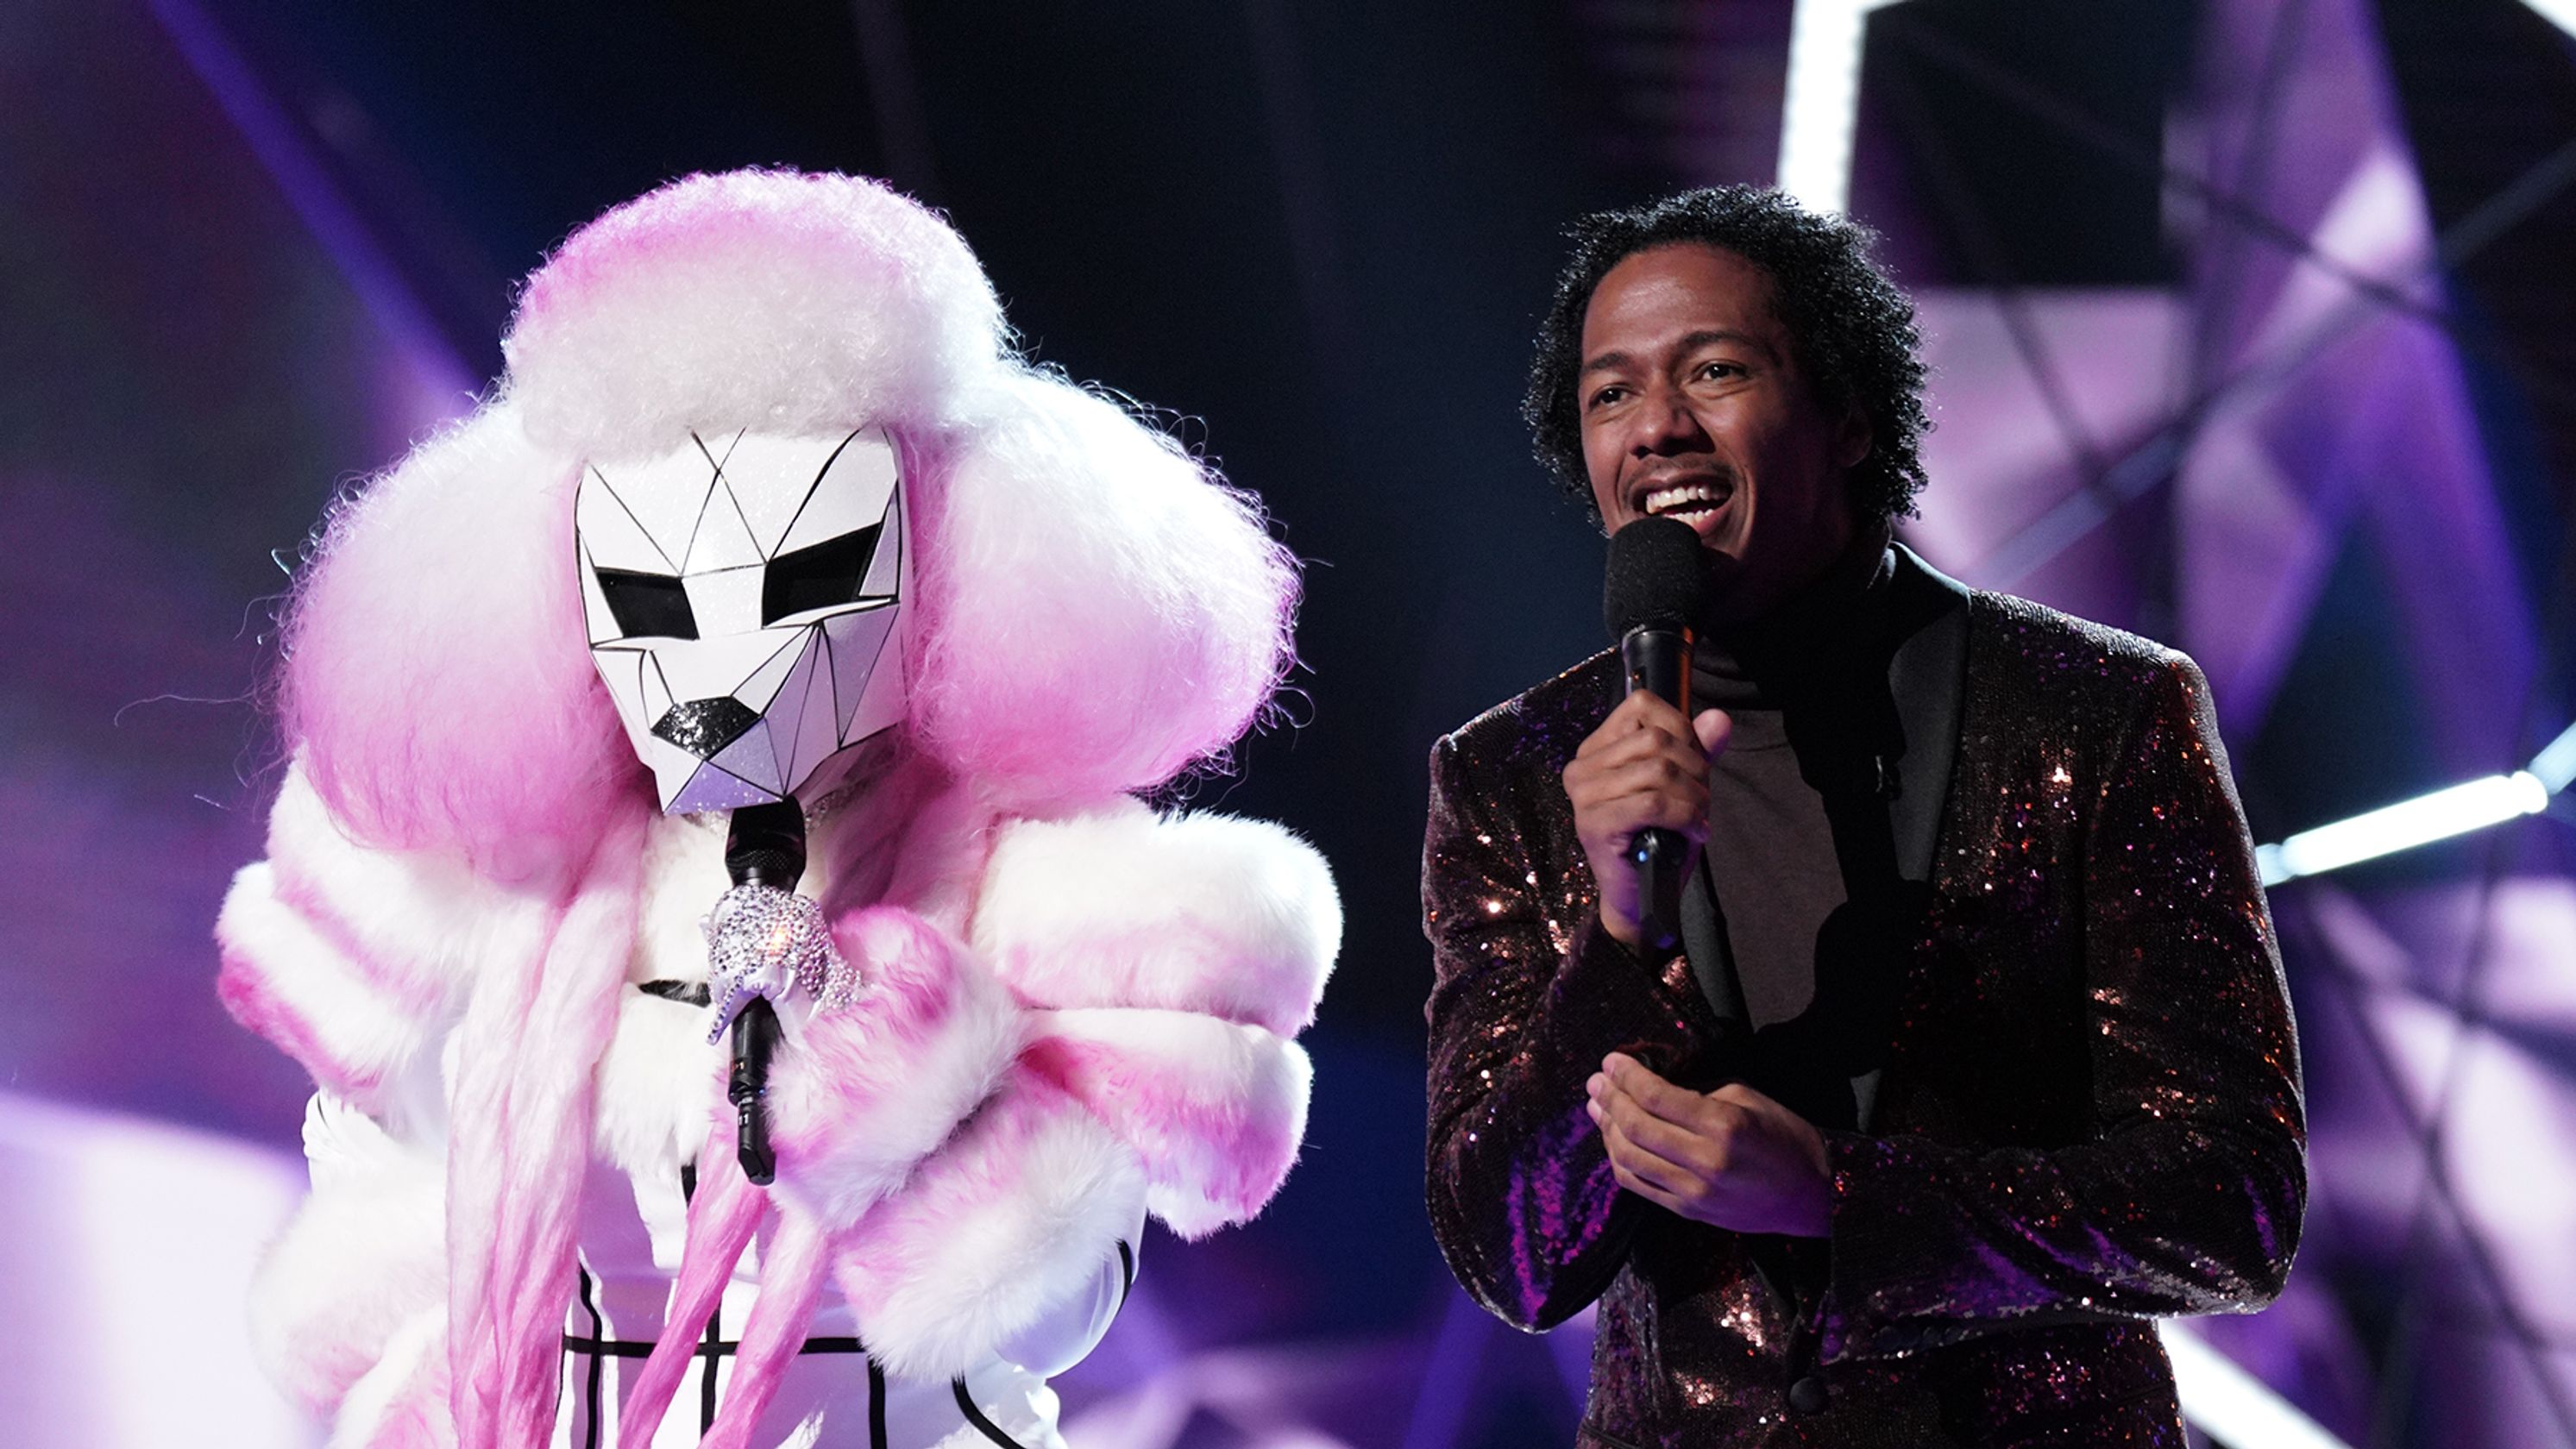 'The Masked Singer' Episode 2 recap: Queen bees, aliens and pineapples